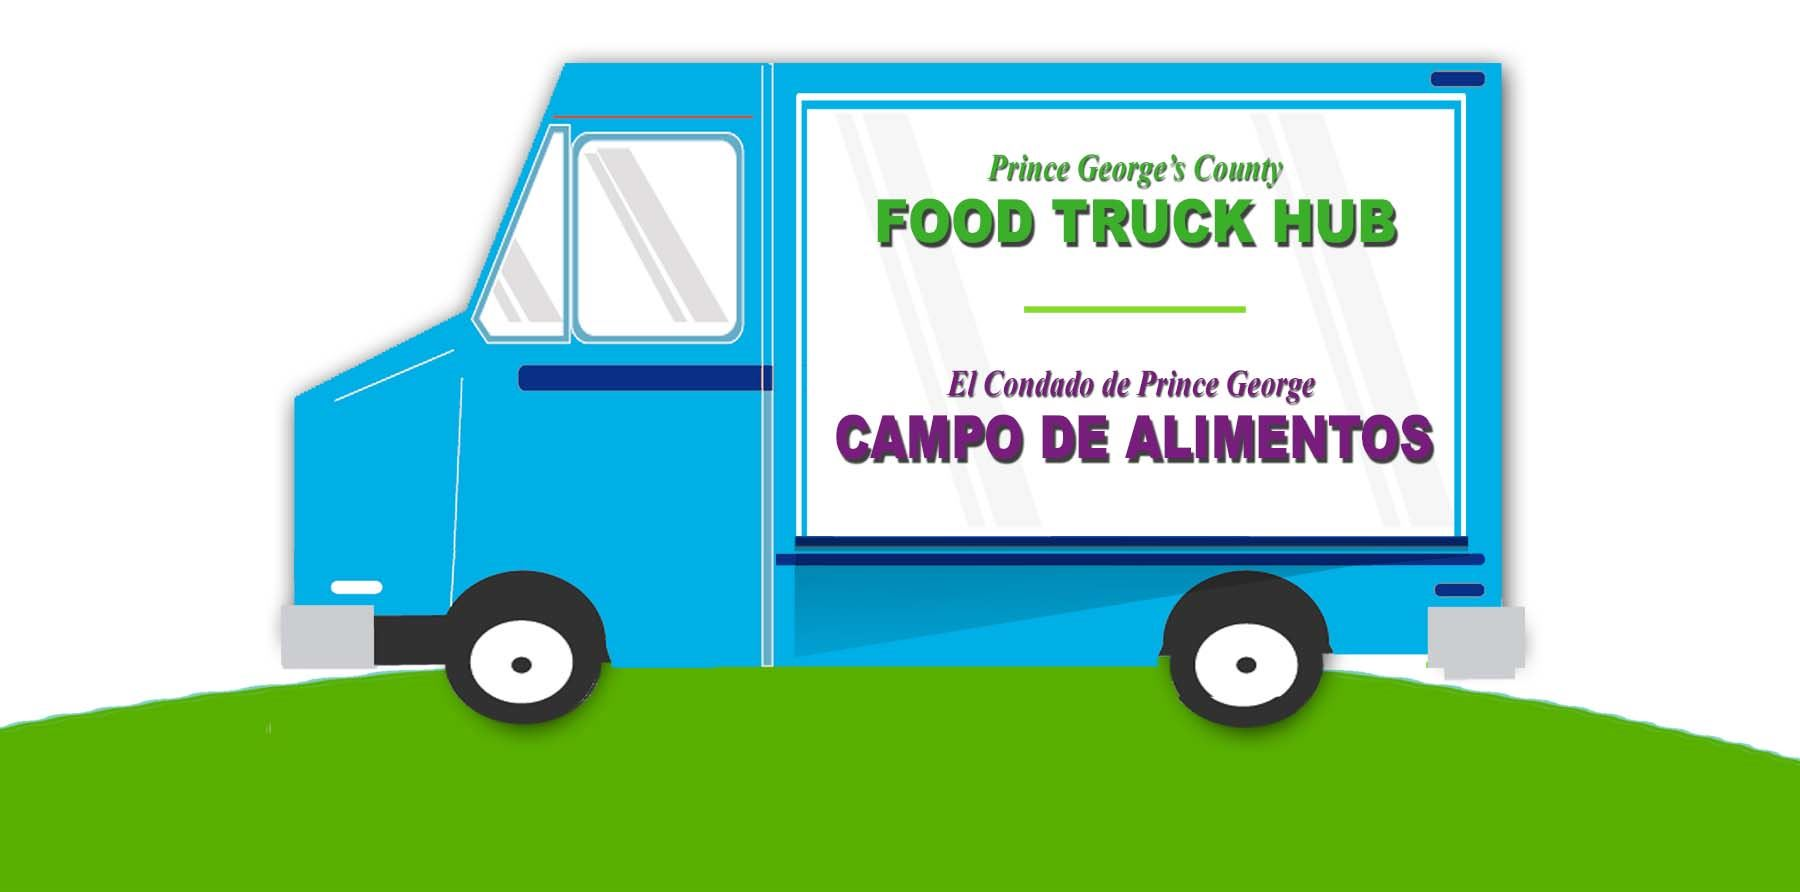 Image of Food Truck with Sign - Prince George's County Food Truck Hub